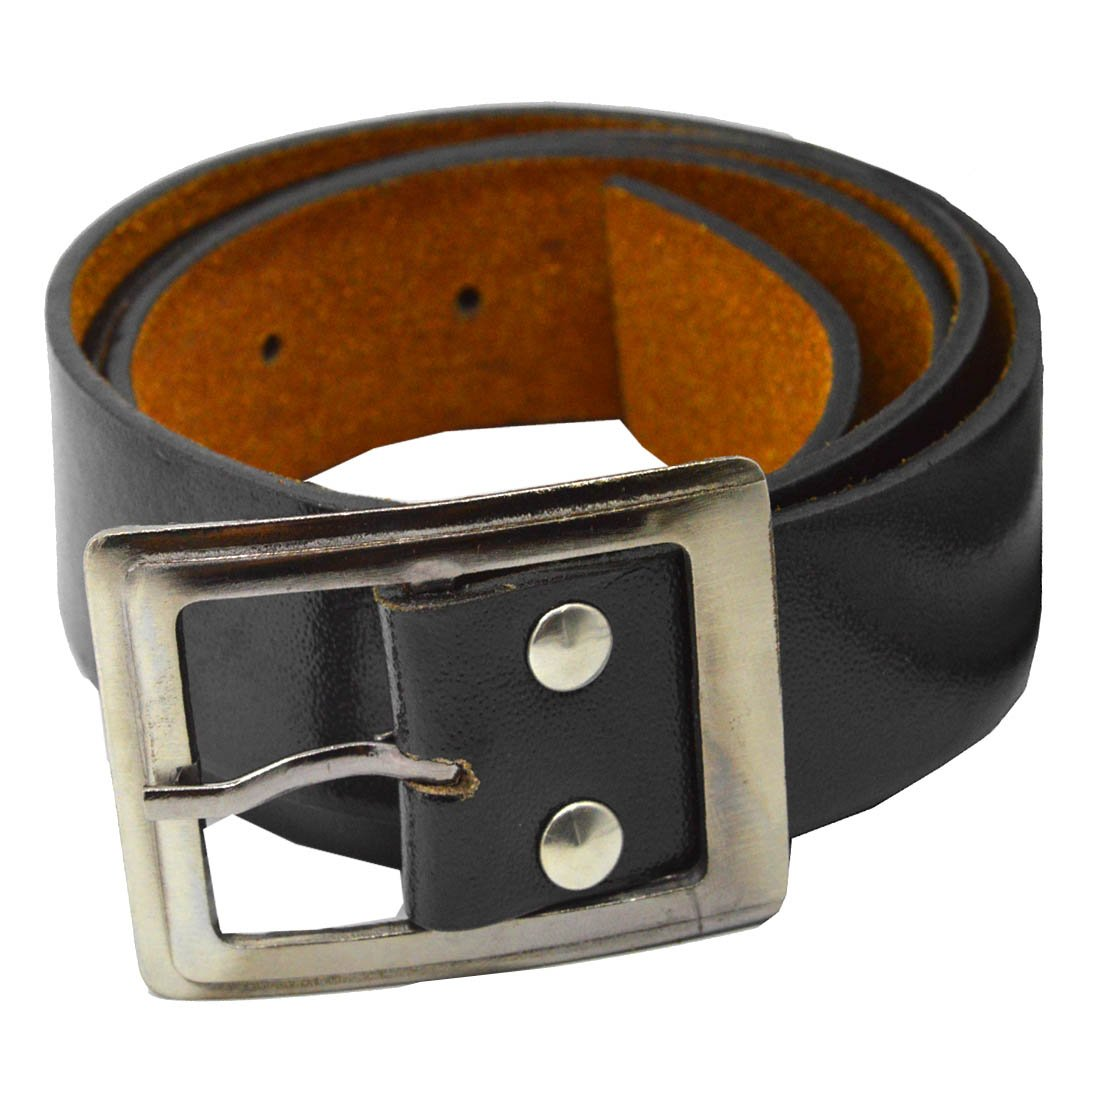 3ee5456b2 Faynci Super Collection Designed Black Color Belt for Boys and Mens   Amazon.in  Clothing   Accessories